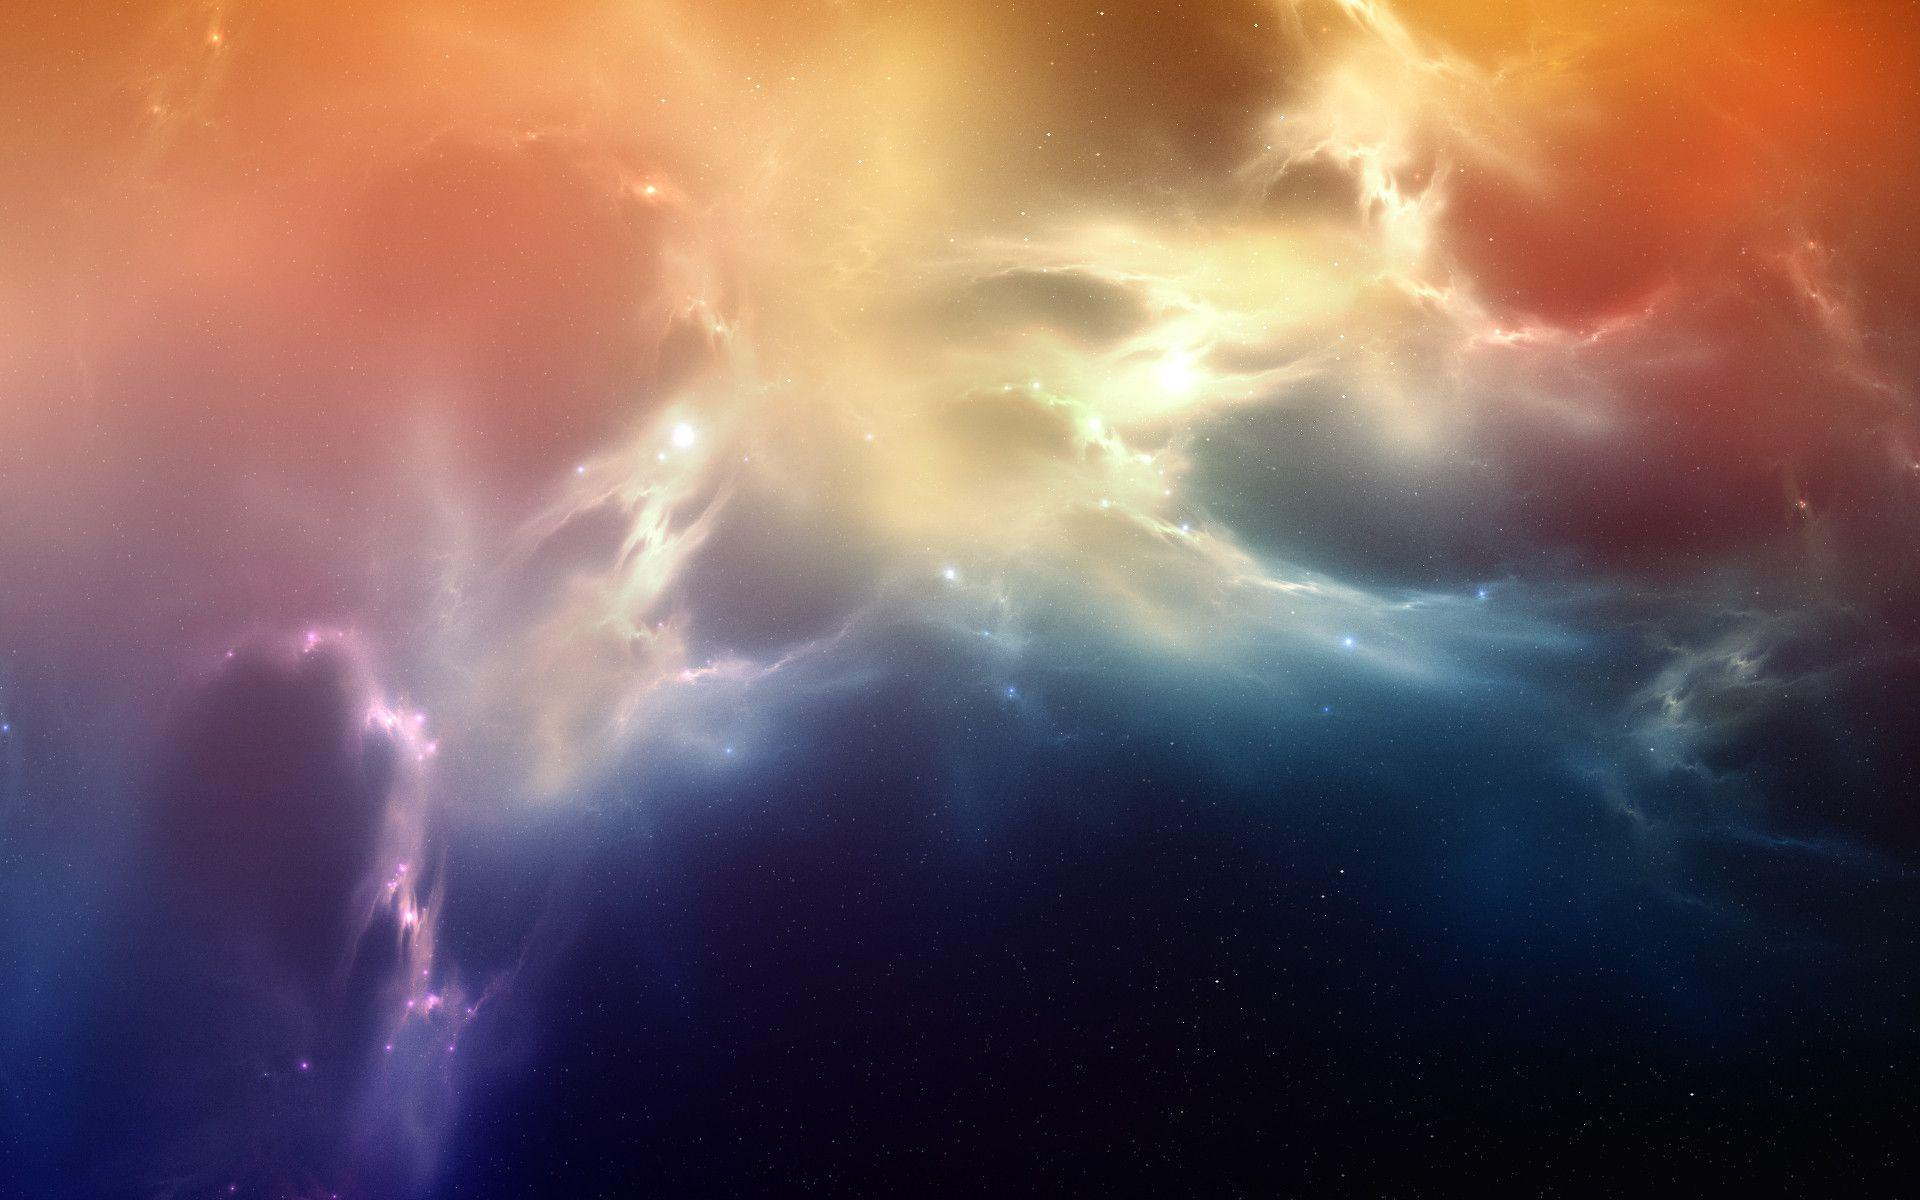 HD Nebula Wallpapers - Wallpaper Cave